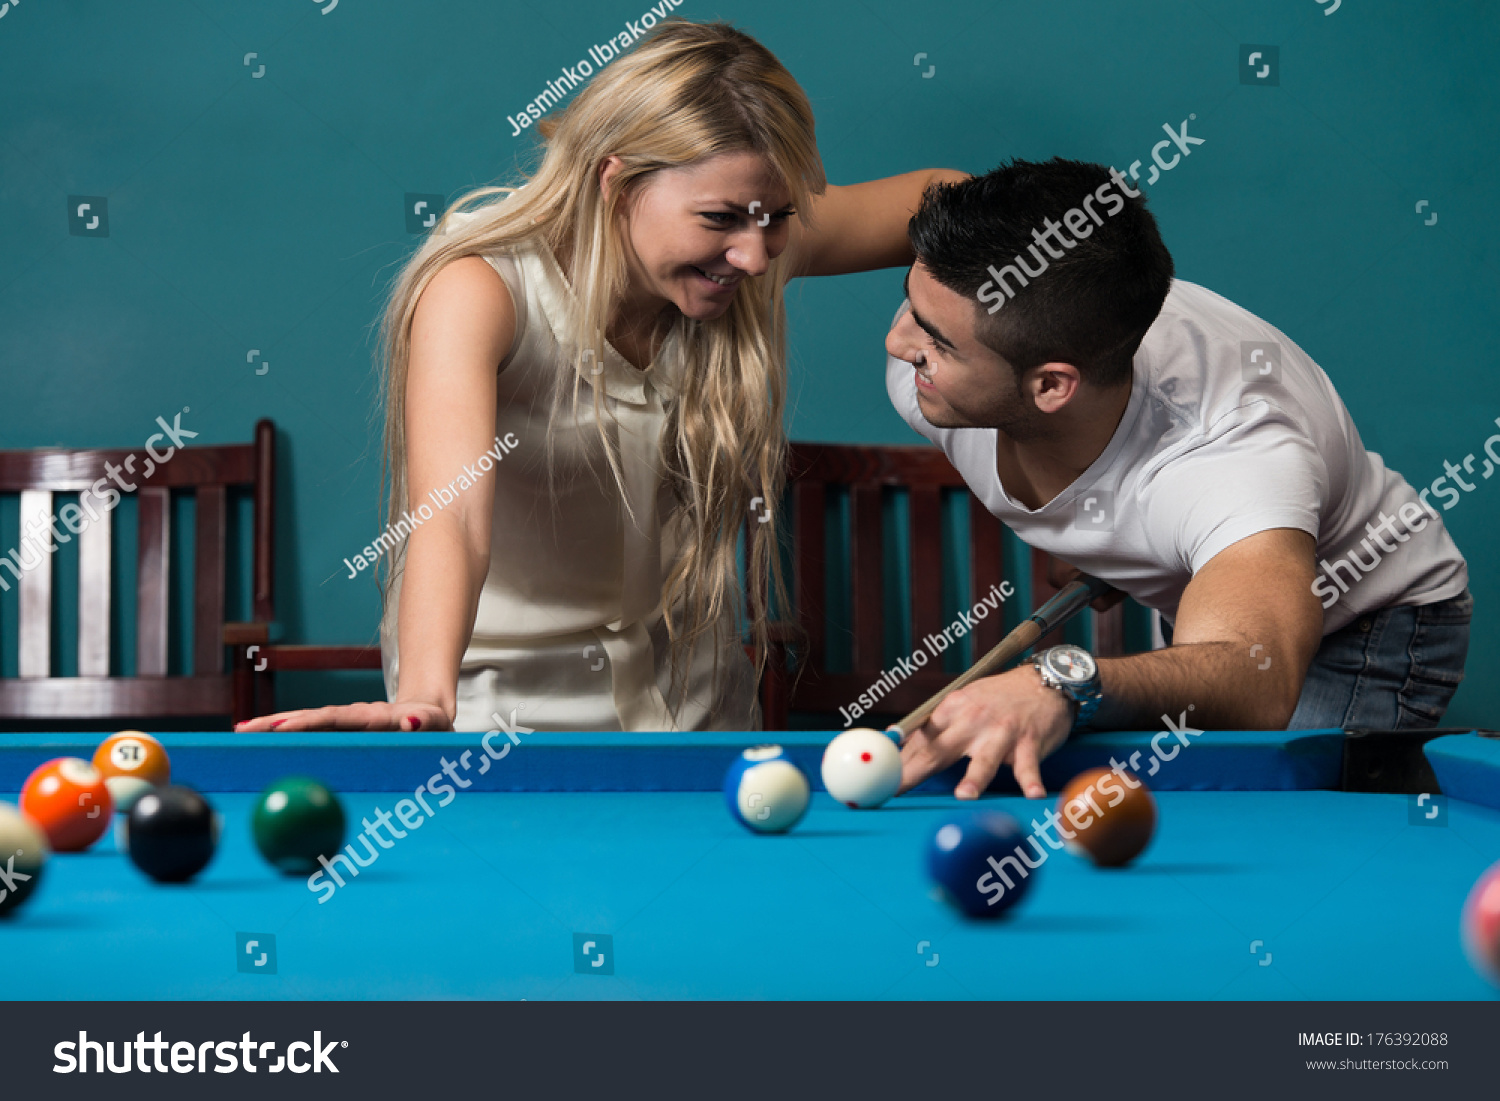 flirting signs for girls free games download games